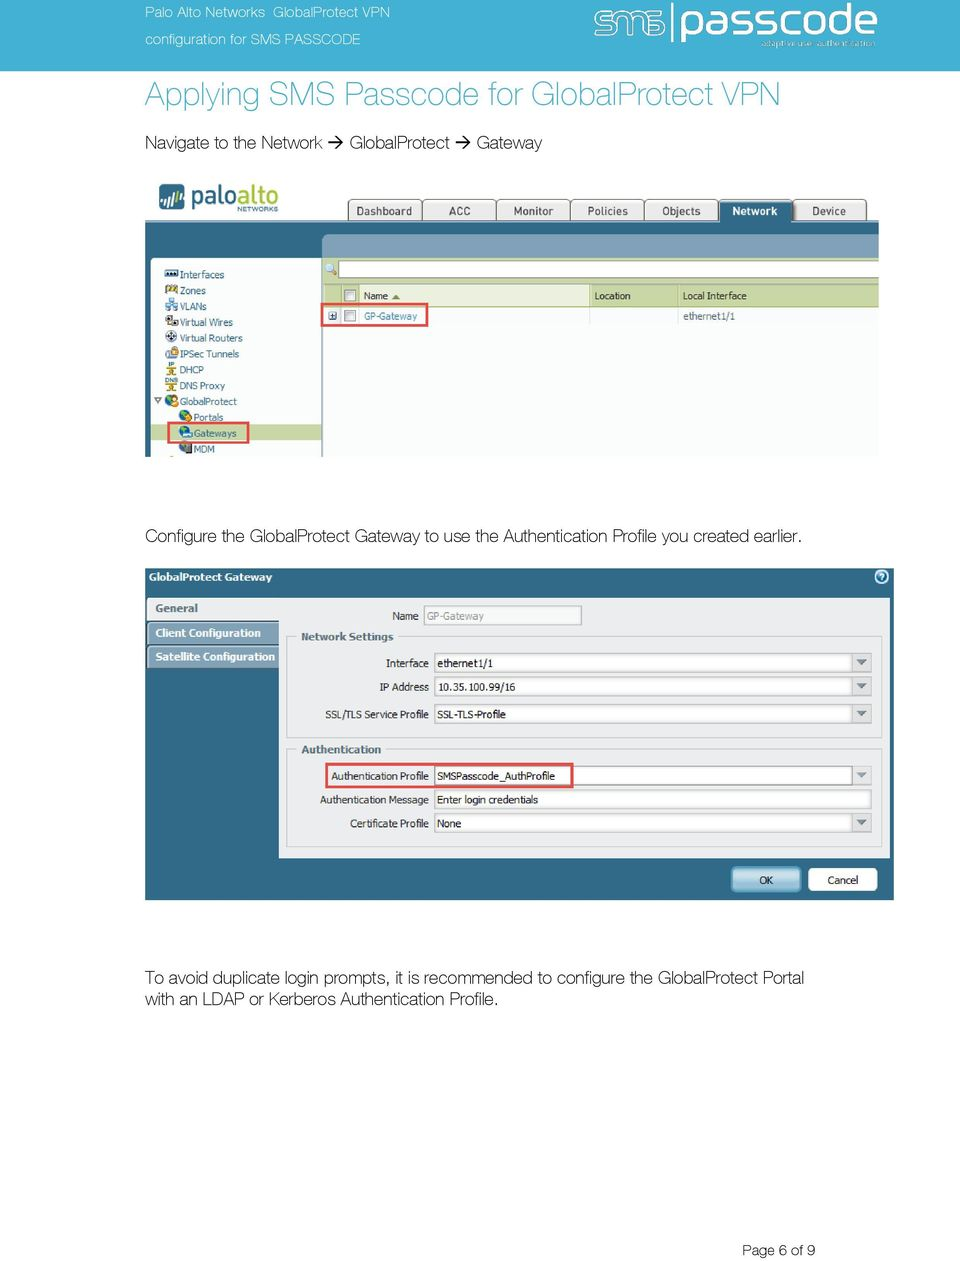 Palo Alto Networks GlobalProtect VPN configuration for SMS